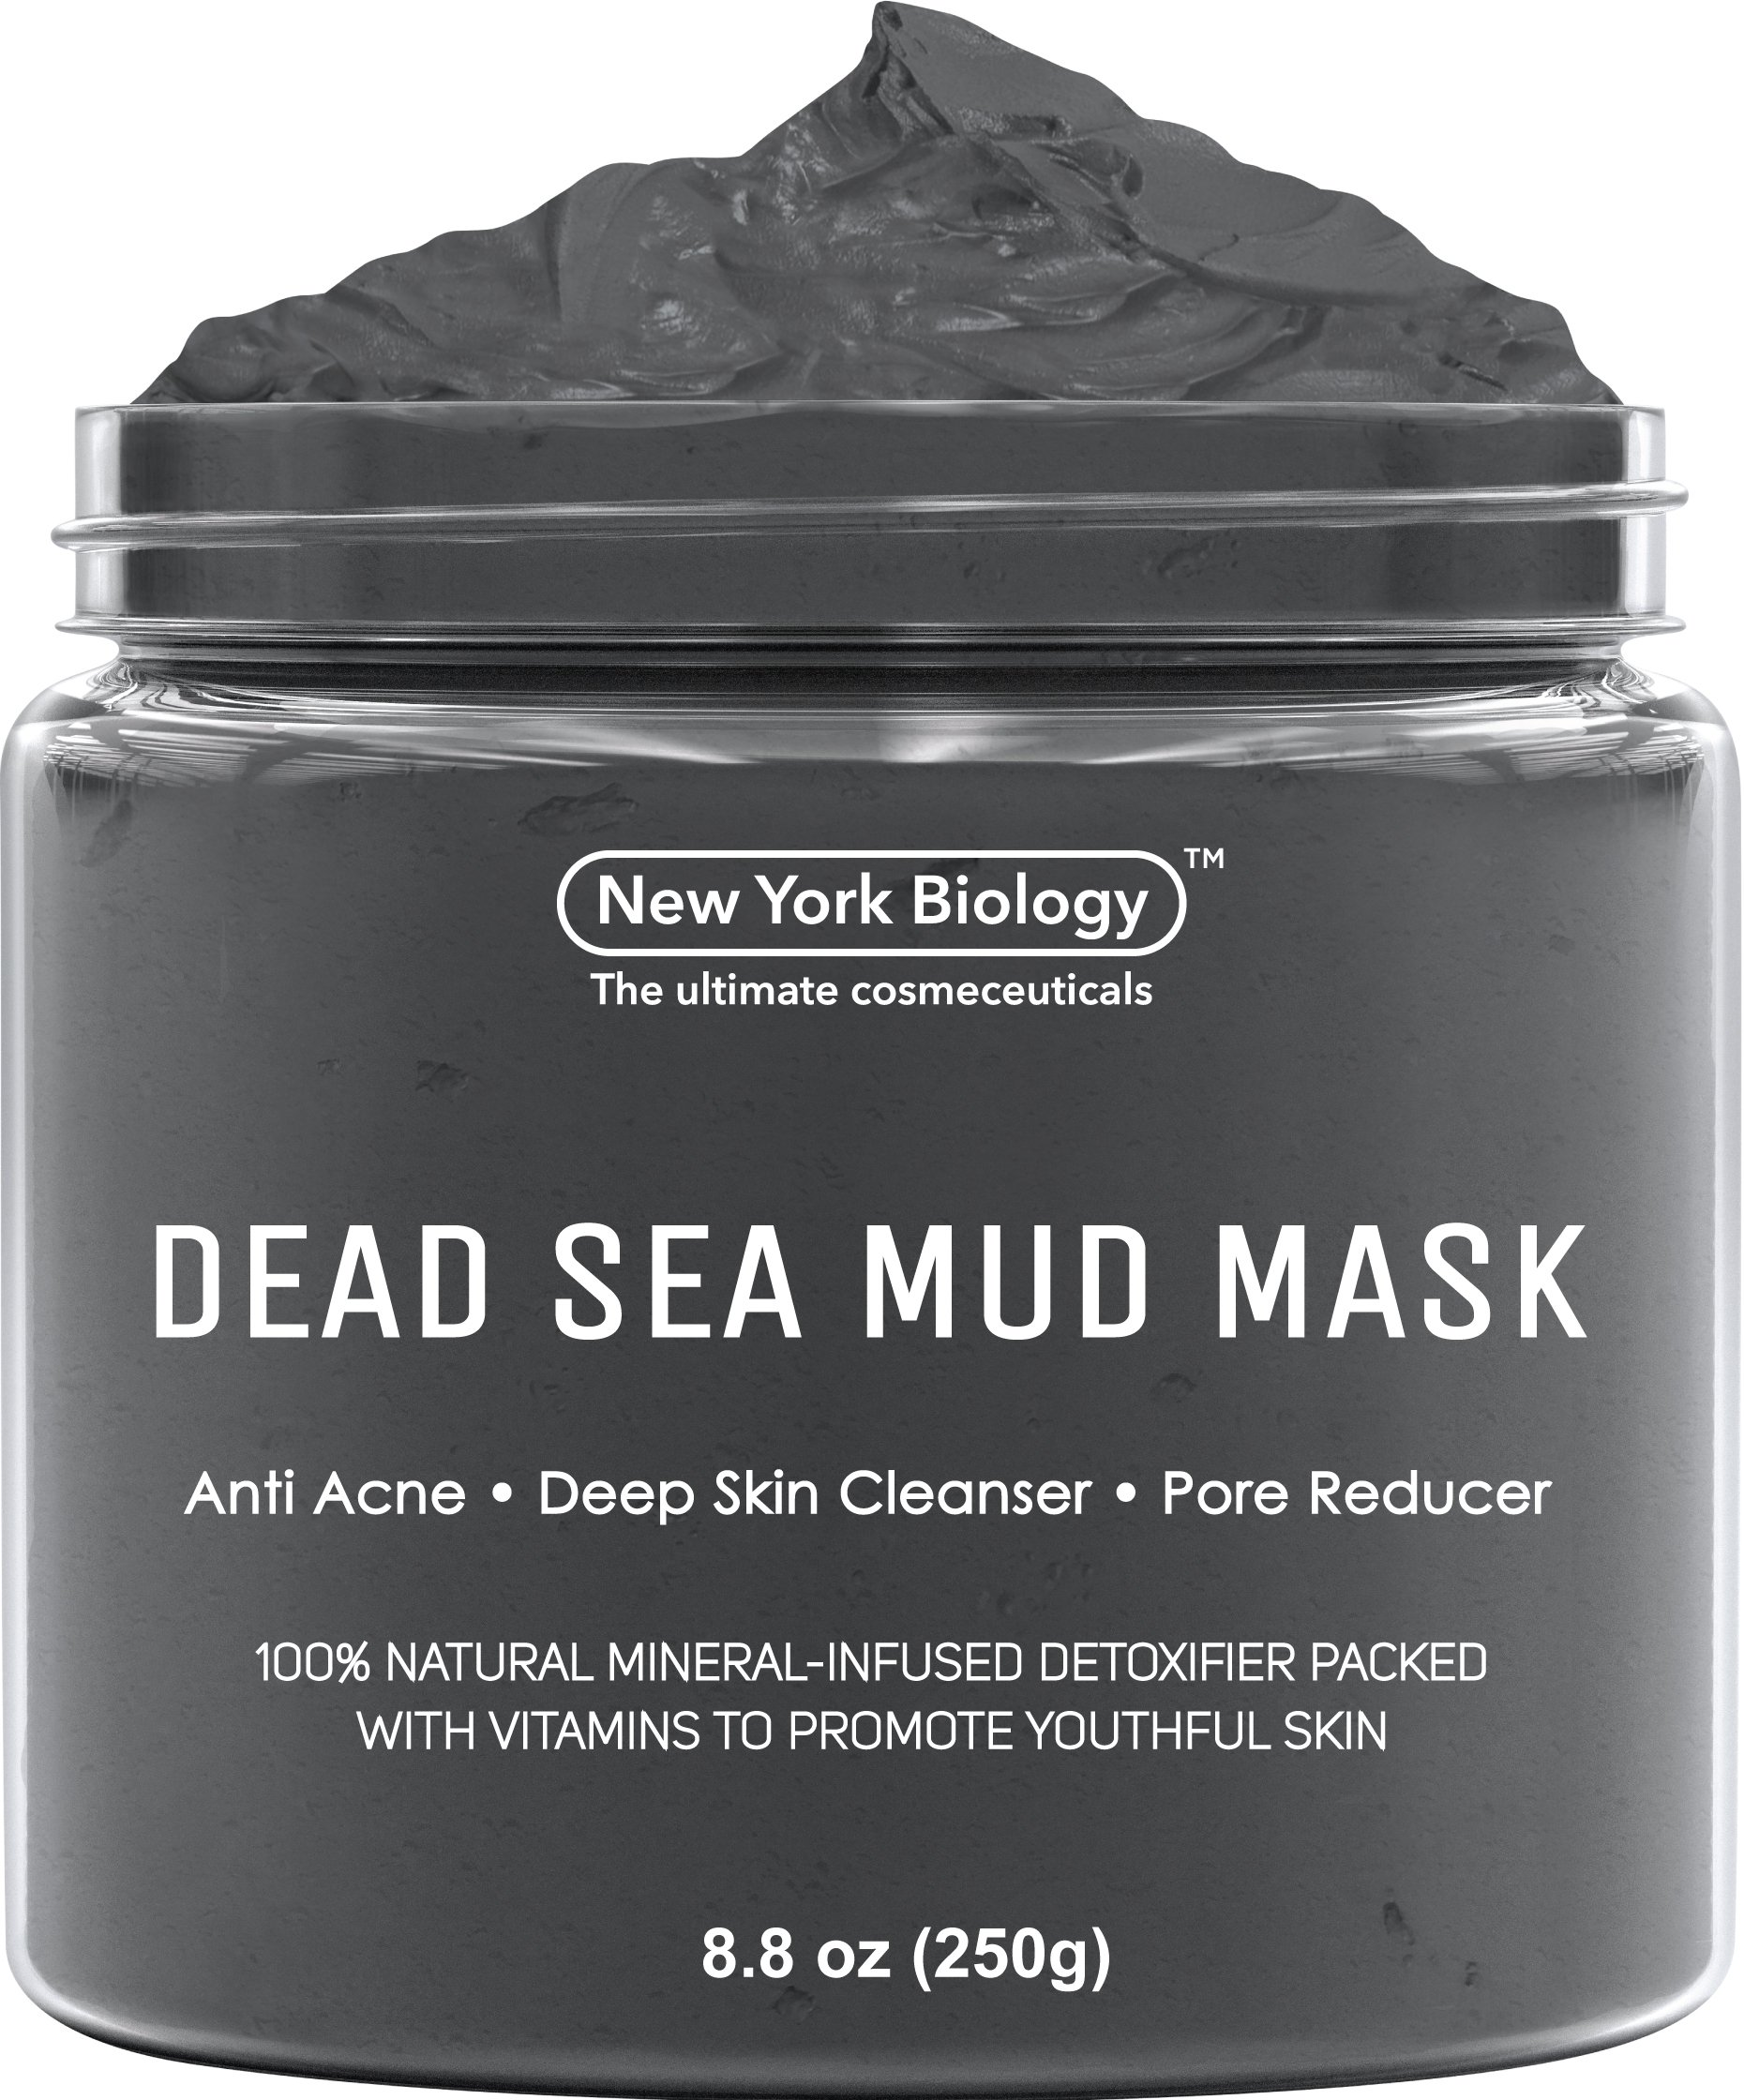 New York Biology Dead Sea Mud Mask for Face and Body - All Natural - Spa Quality Pore Reducer for Acne, Blackheads and Oily Skin - Tightens Skin for A Healthier Complexion - 8.8 oz by New York Biology